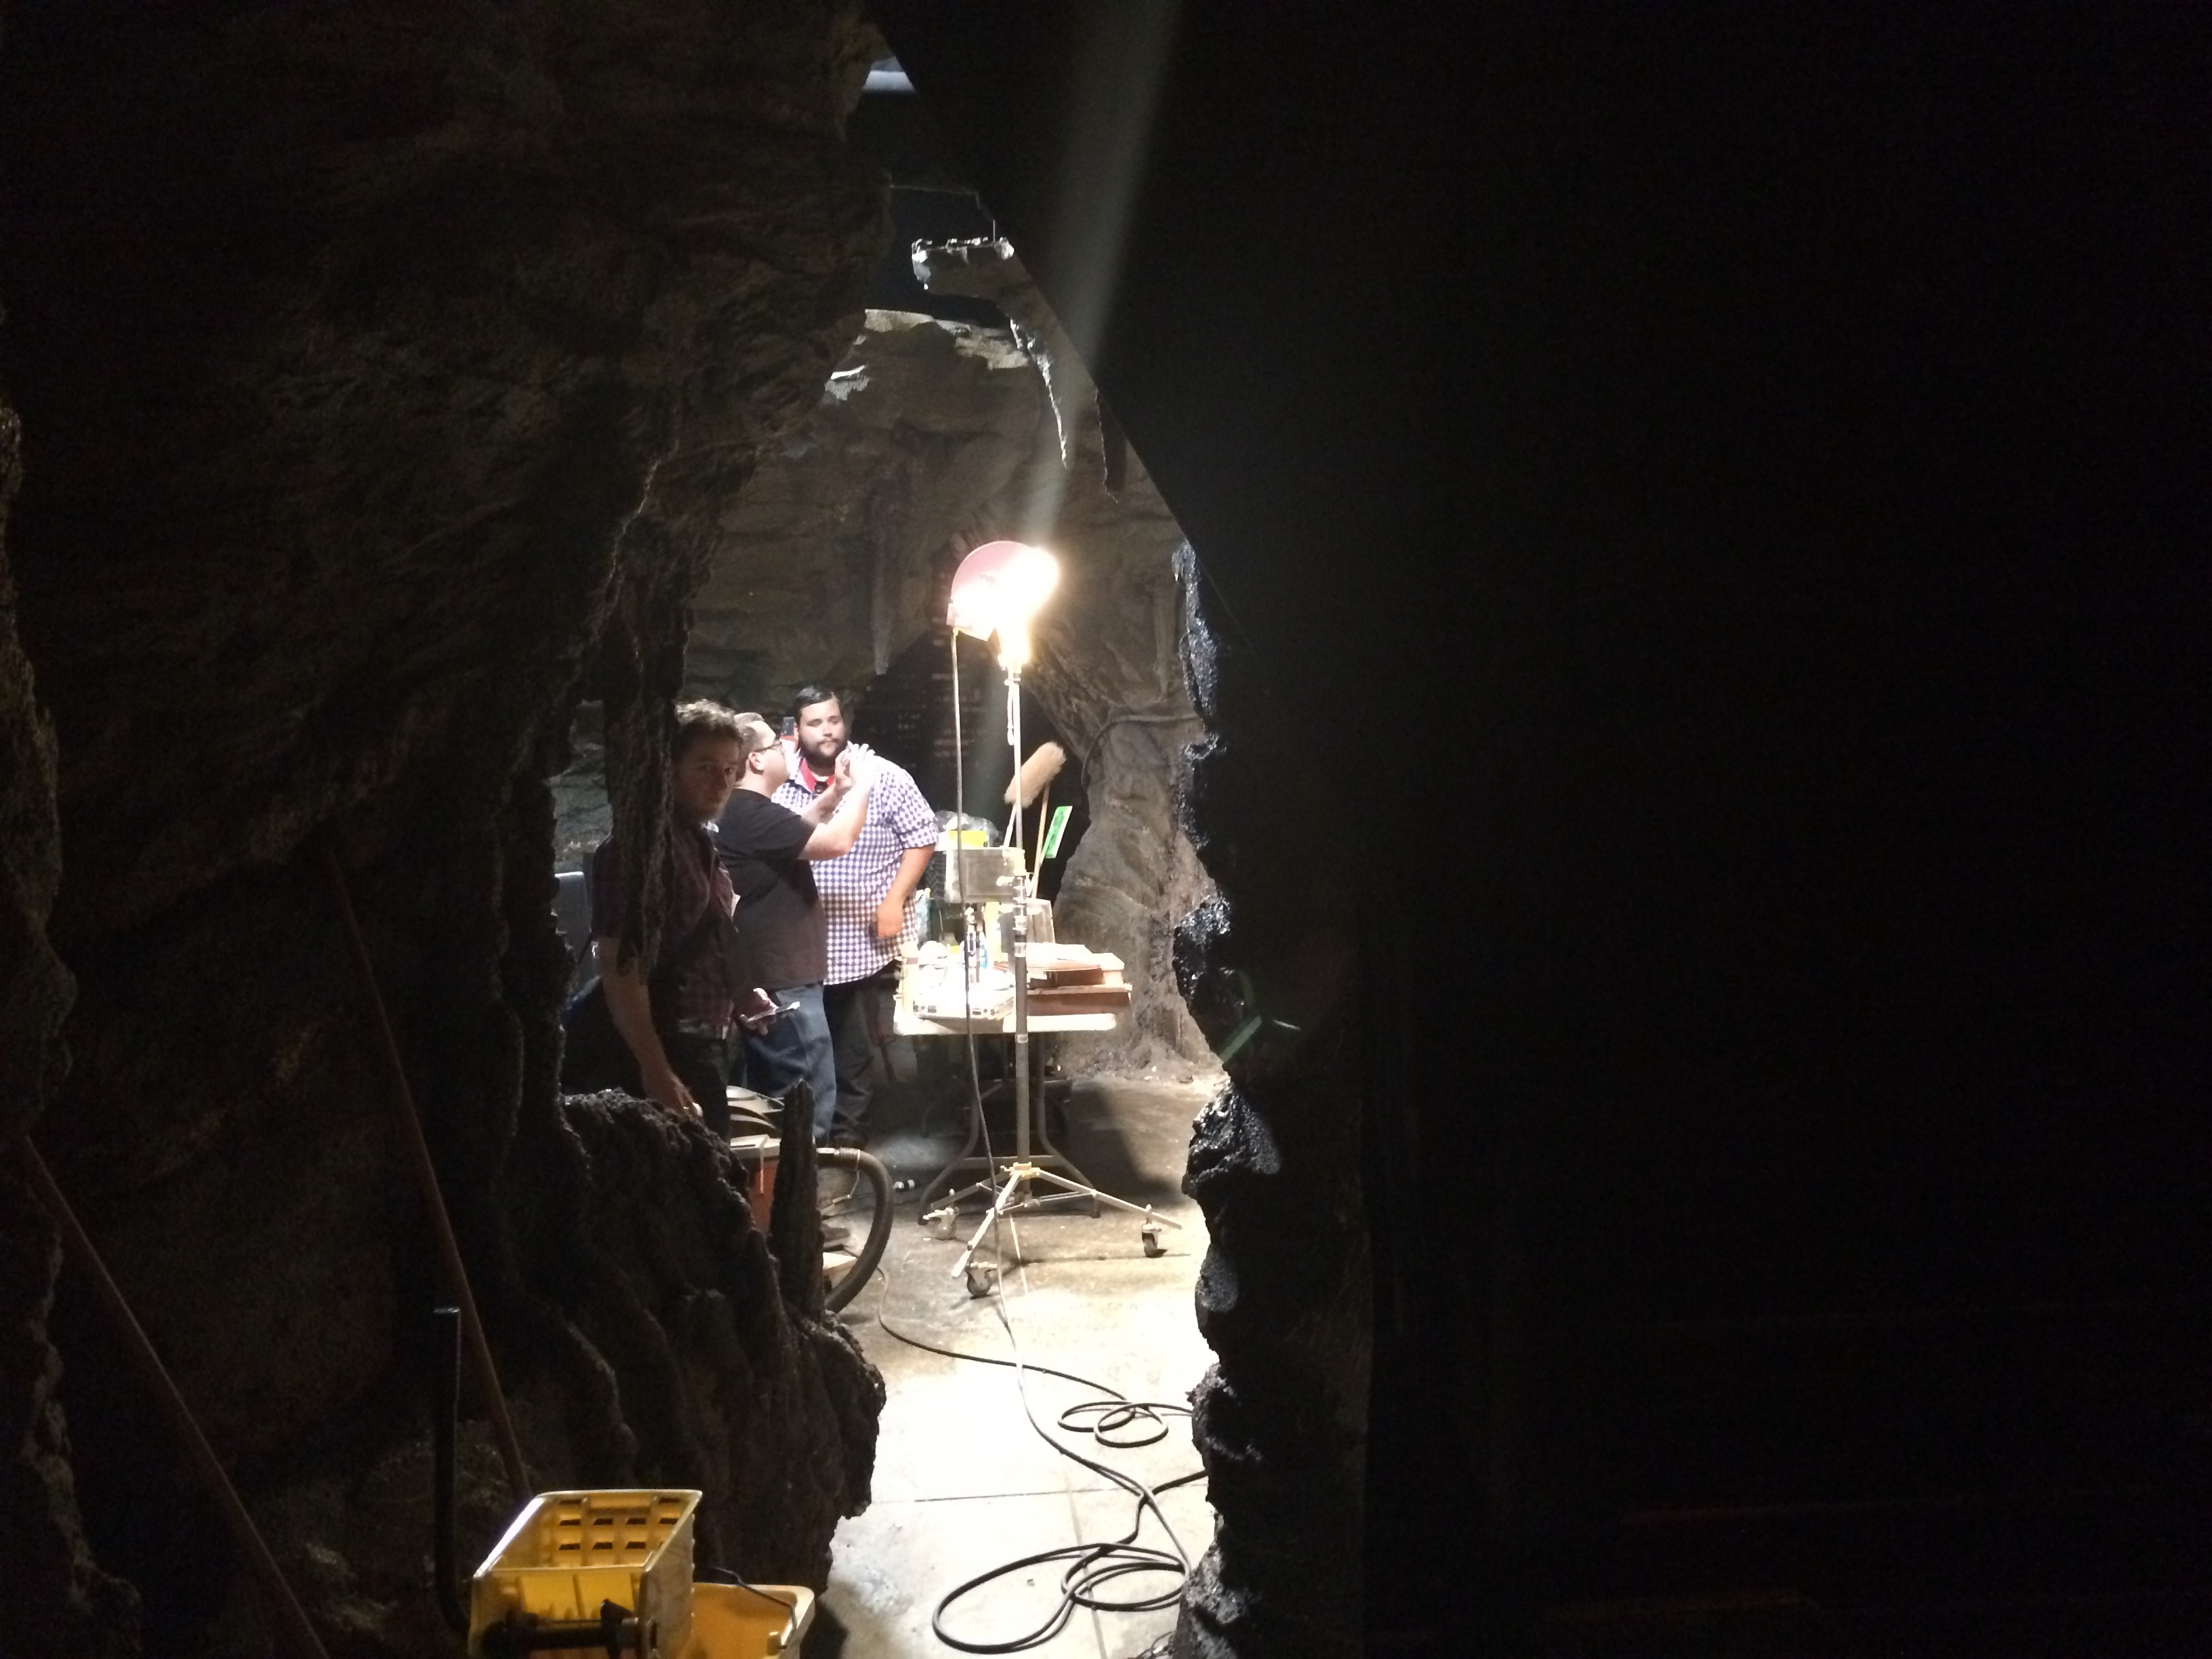 People milling about the Cave.